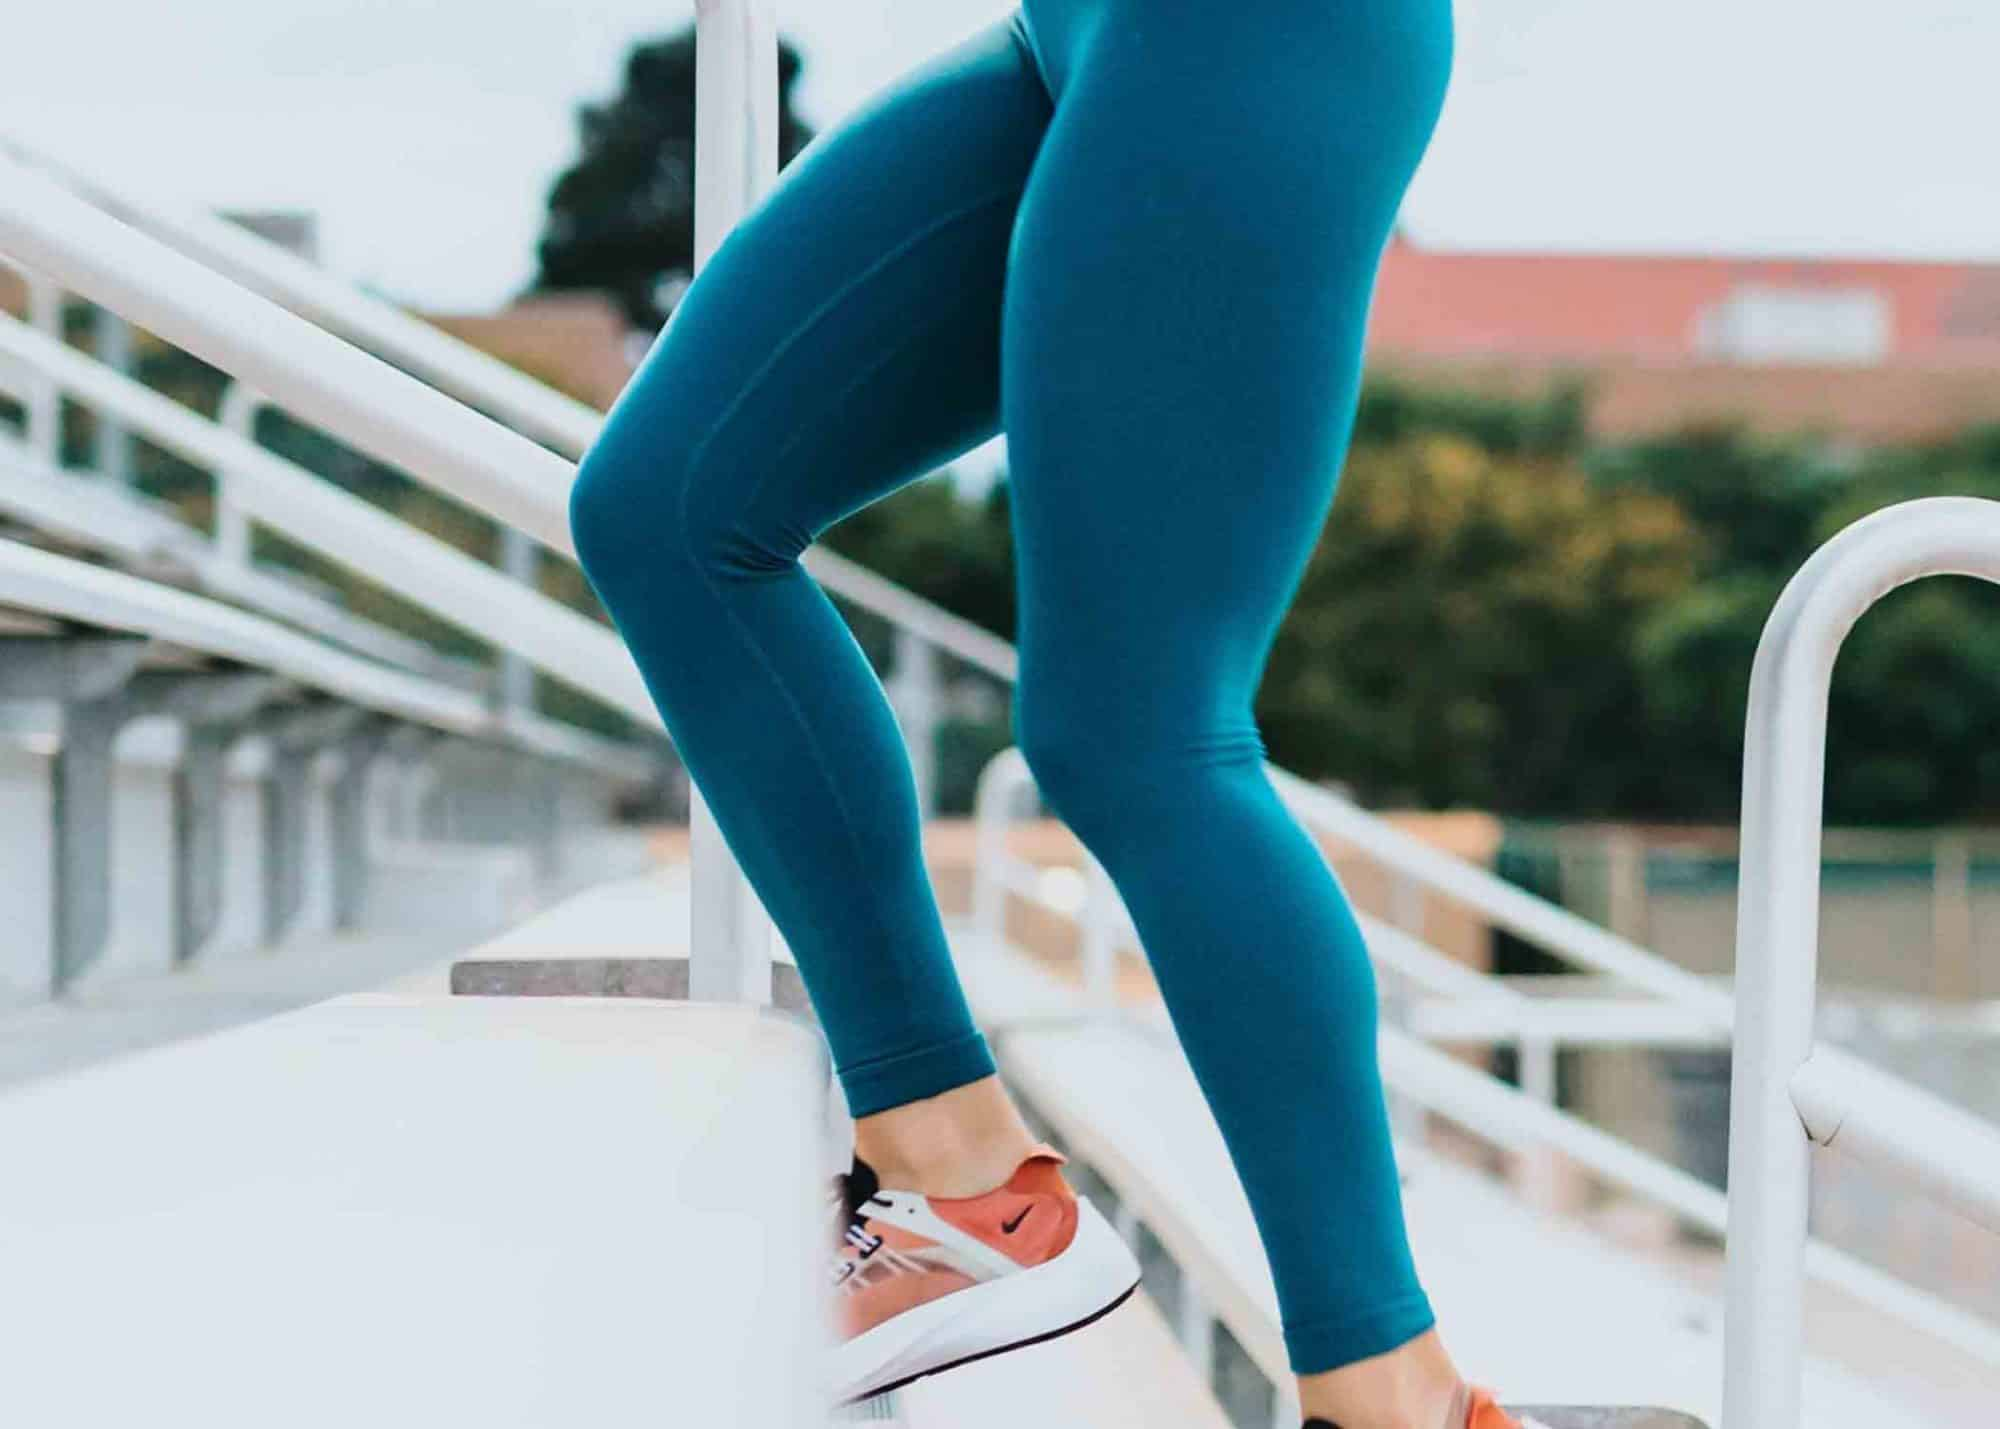 Nina-Carras-Personal-Trainer-Fitness-Stairs